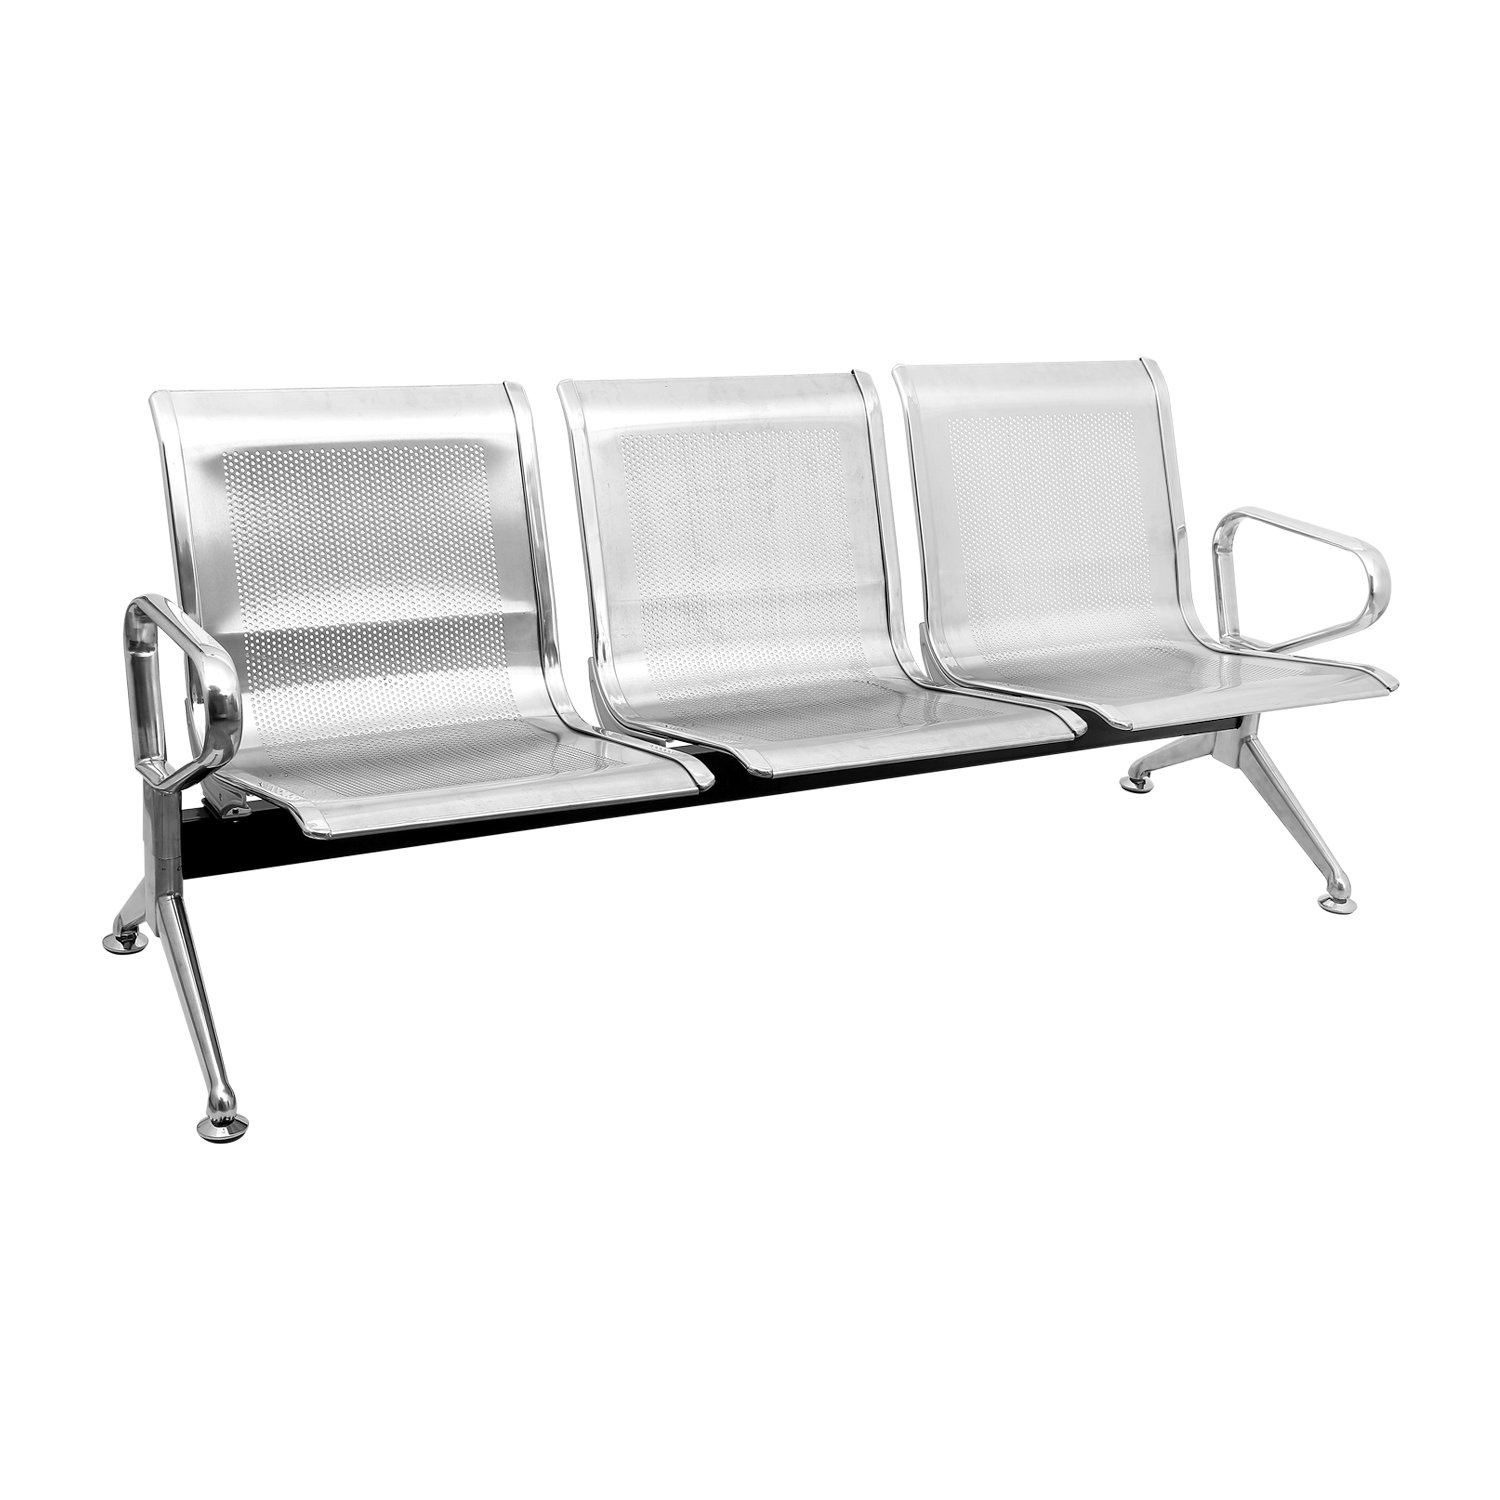 Reception Chairs Buy Reception Chairs line at Low Prices in